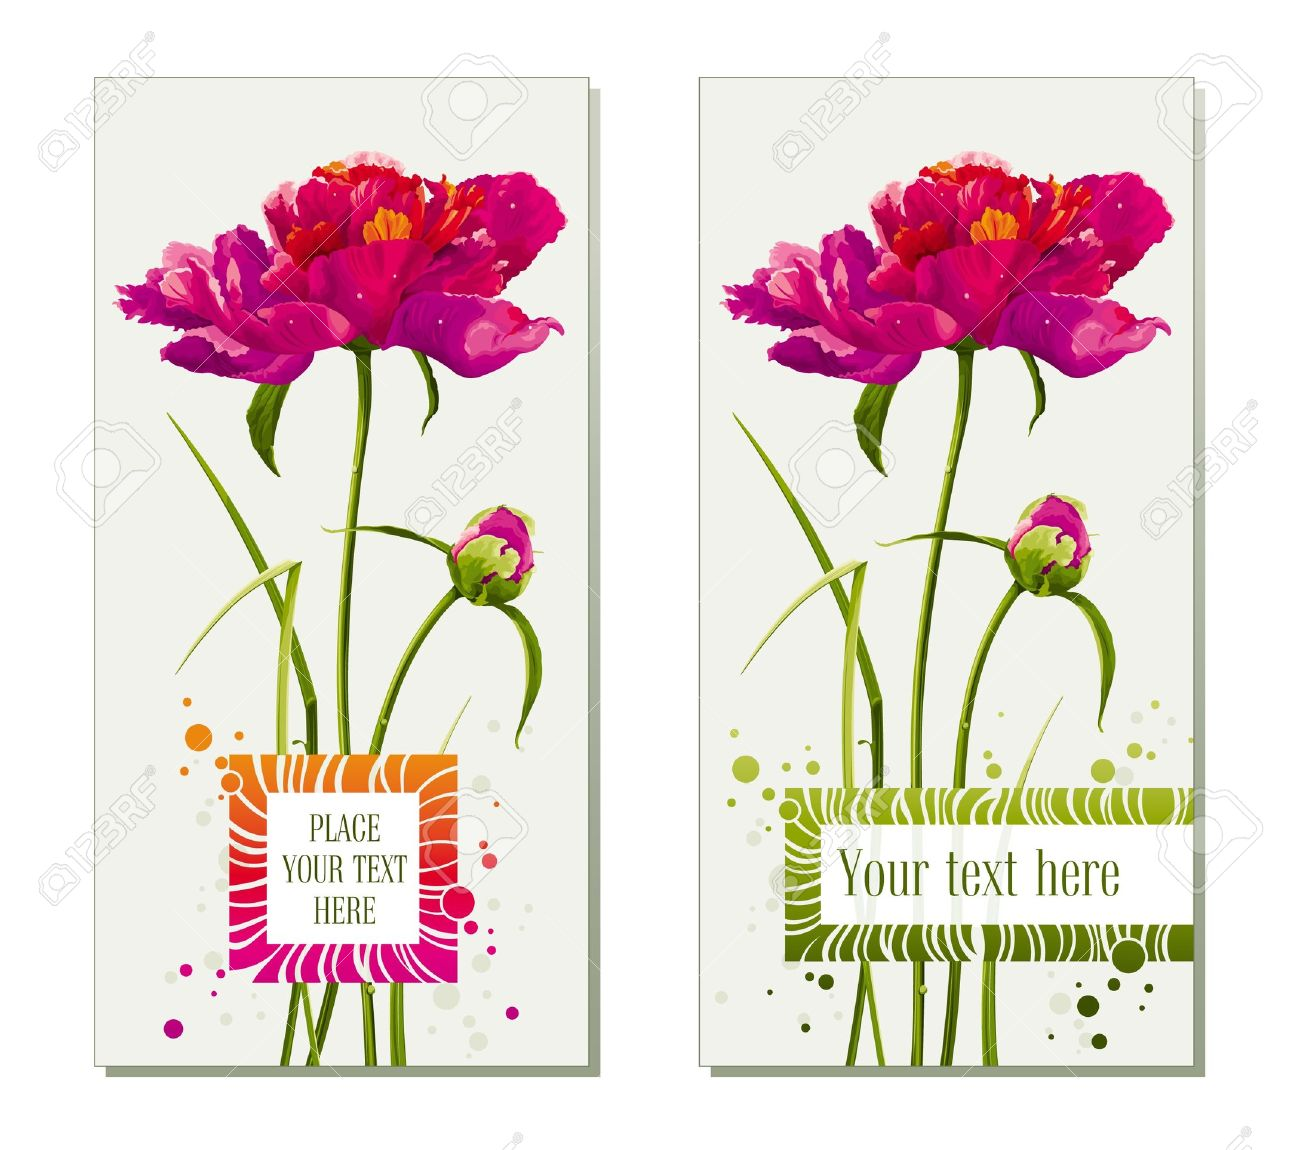 Floral Greeting Cards With Red Peony Flower And Bud Royalty Free.